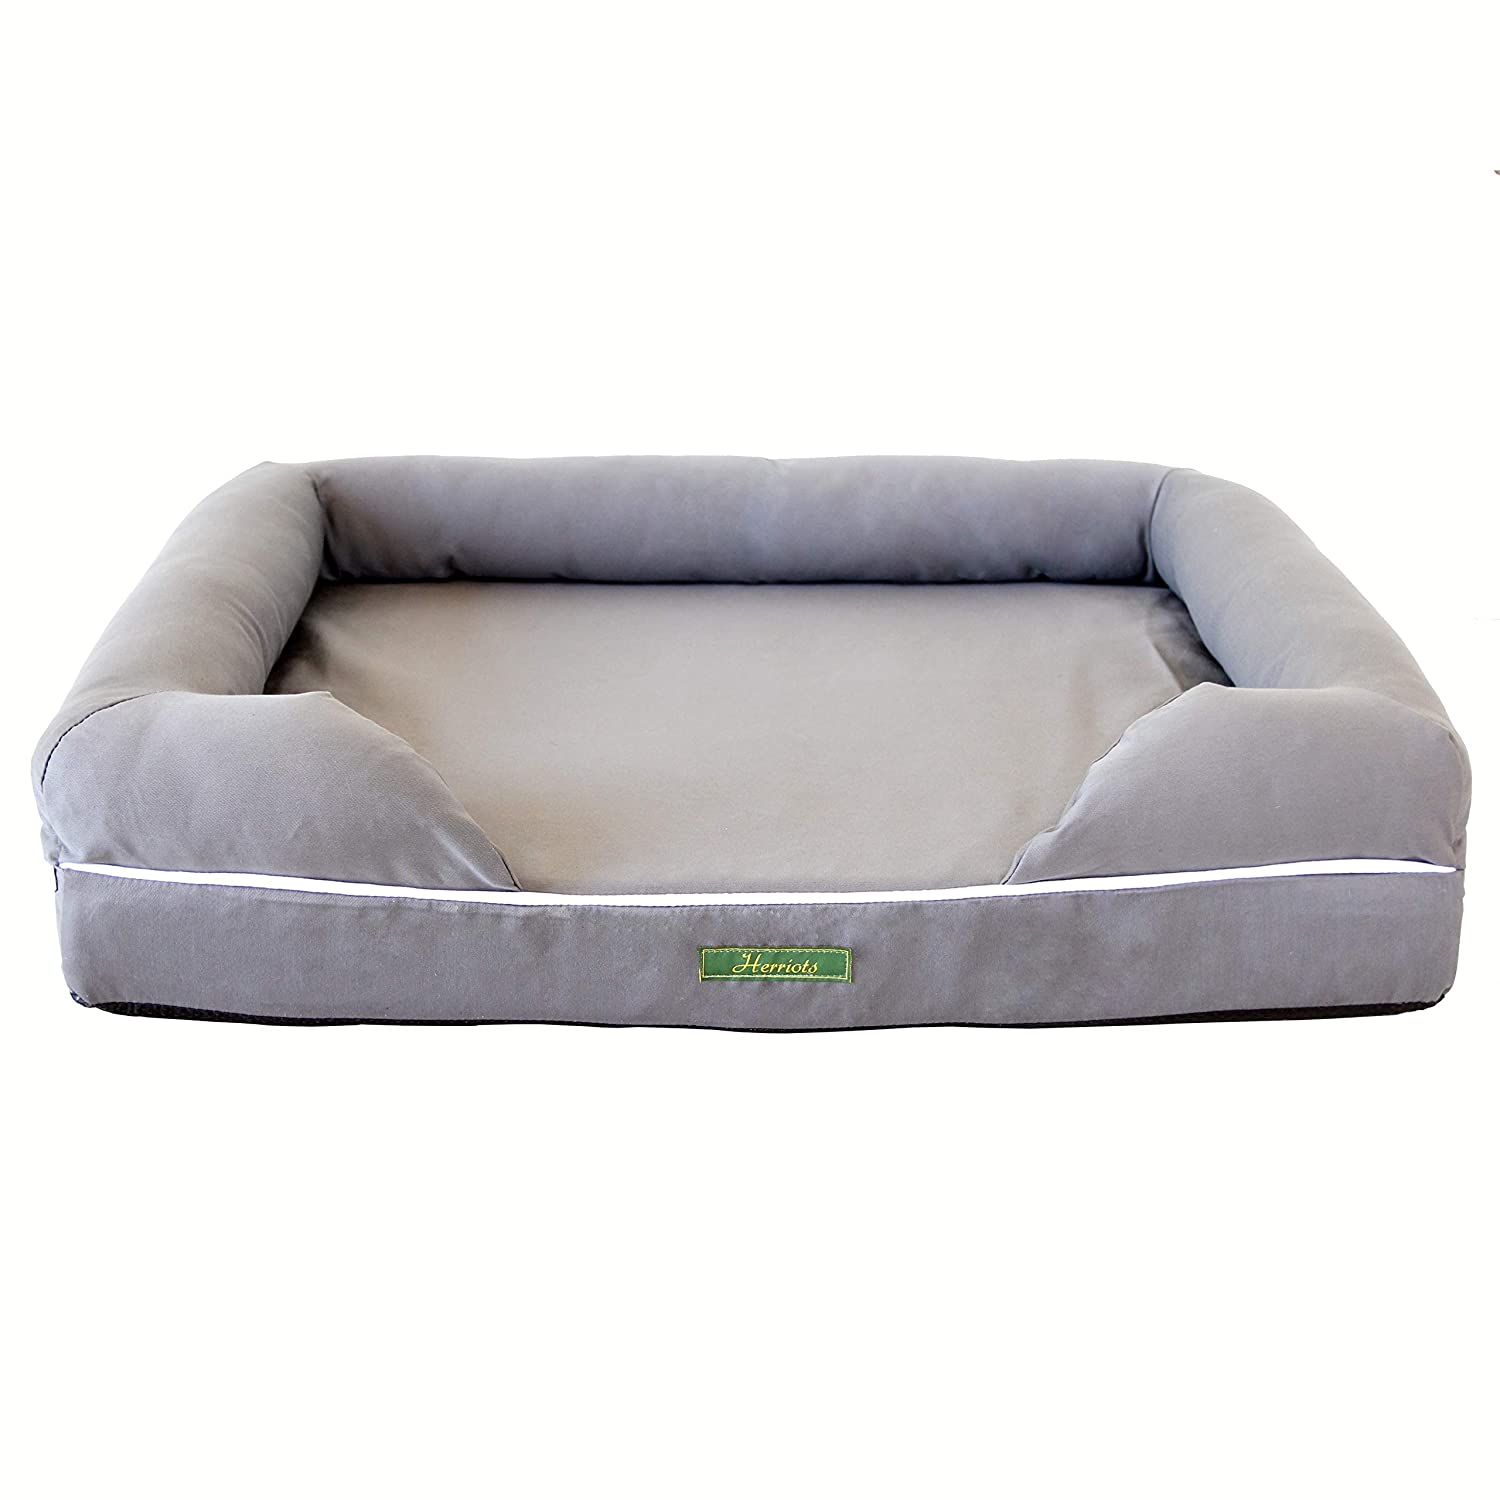 Herriots Memory Foam Dog Bed X-Large (112cm x 87cm x 26cm) Orthopaedic Mattress (GREY) Waterproof Spare Covers & Blankets Available